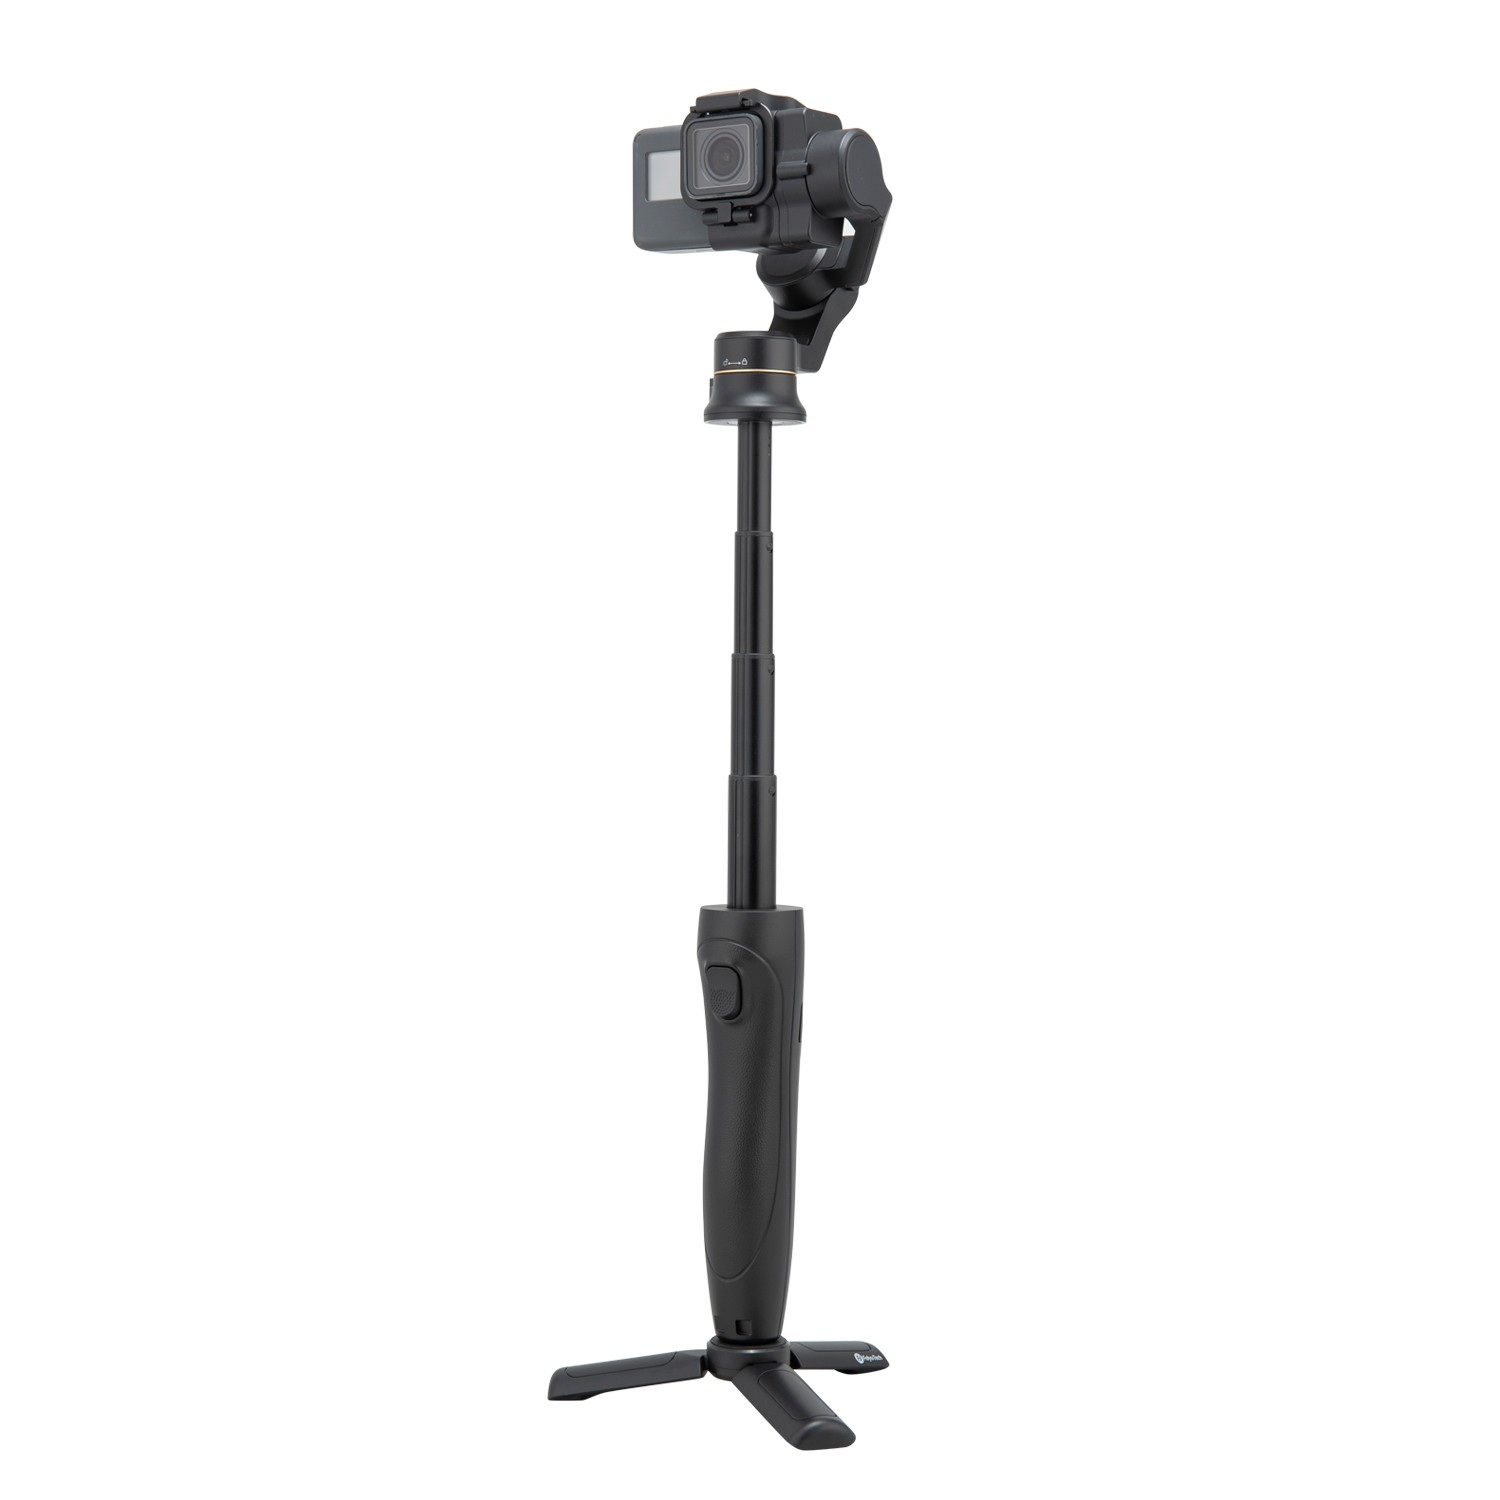 FY Feiyu Vimble 2A 3-Axis Handheld <font><b>Gimbal</b></font> for GoPro Hero 7/6/5 for Sony RX0, Yi Cam <font><b>4K</b></font>, AEE Action <font><b>Cameras</b></font> image